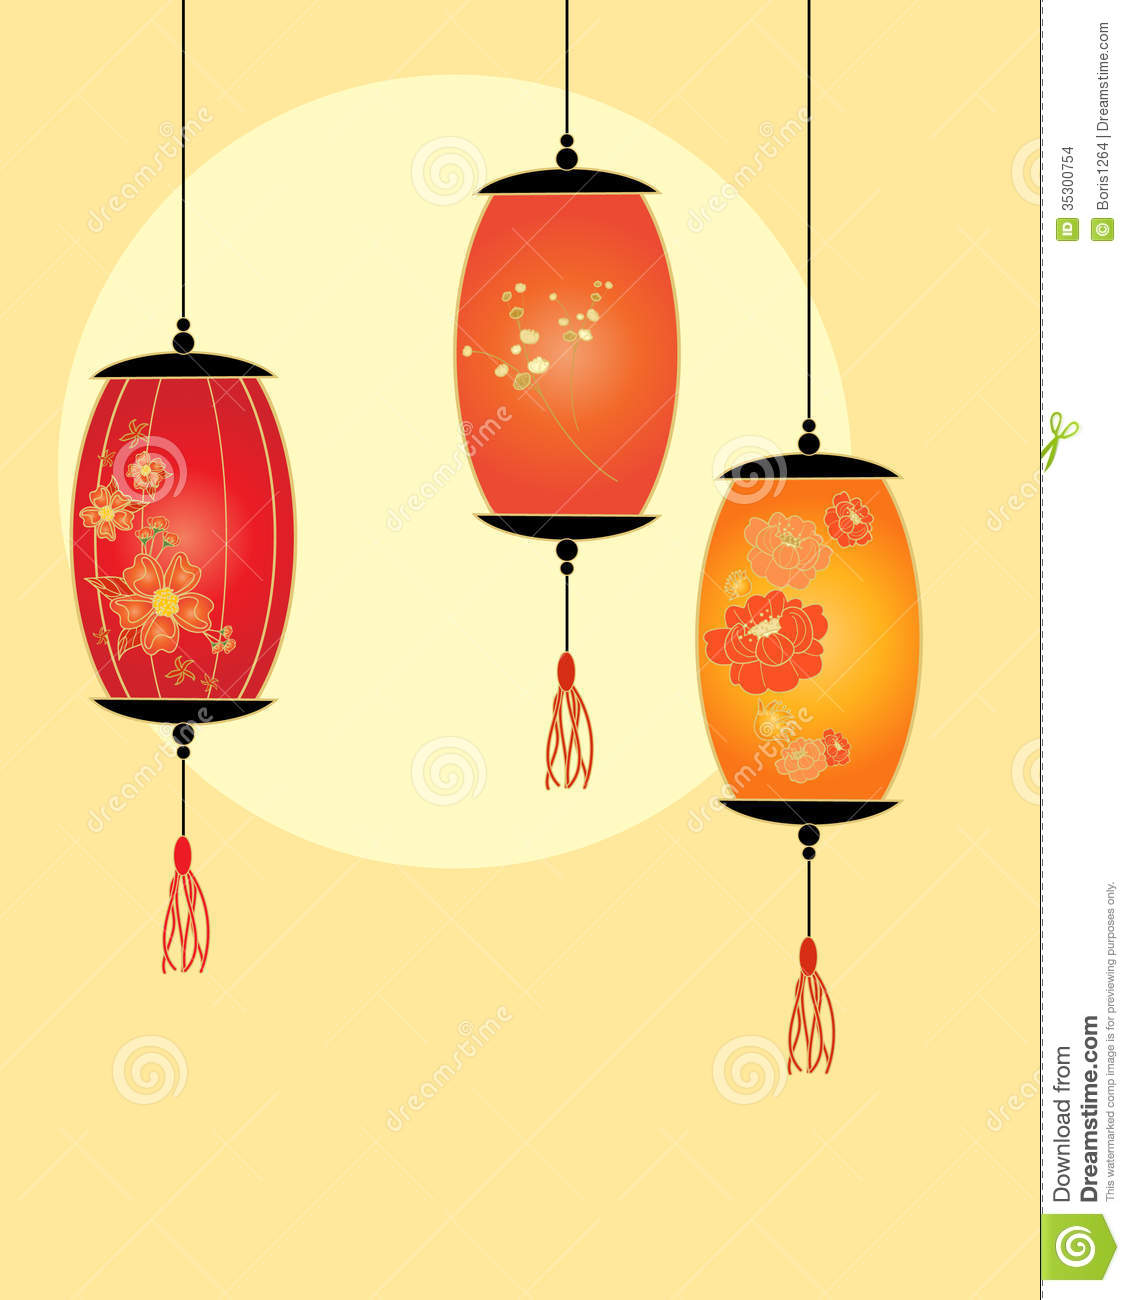 Lantern design stock vector. Illustration of oriental ...